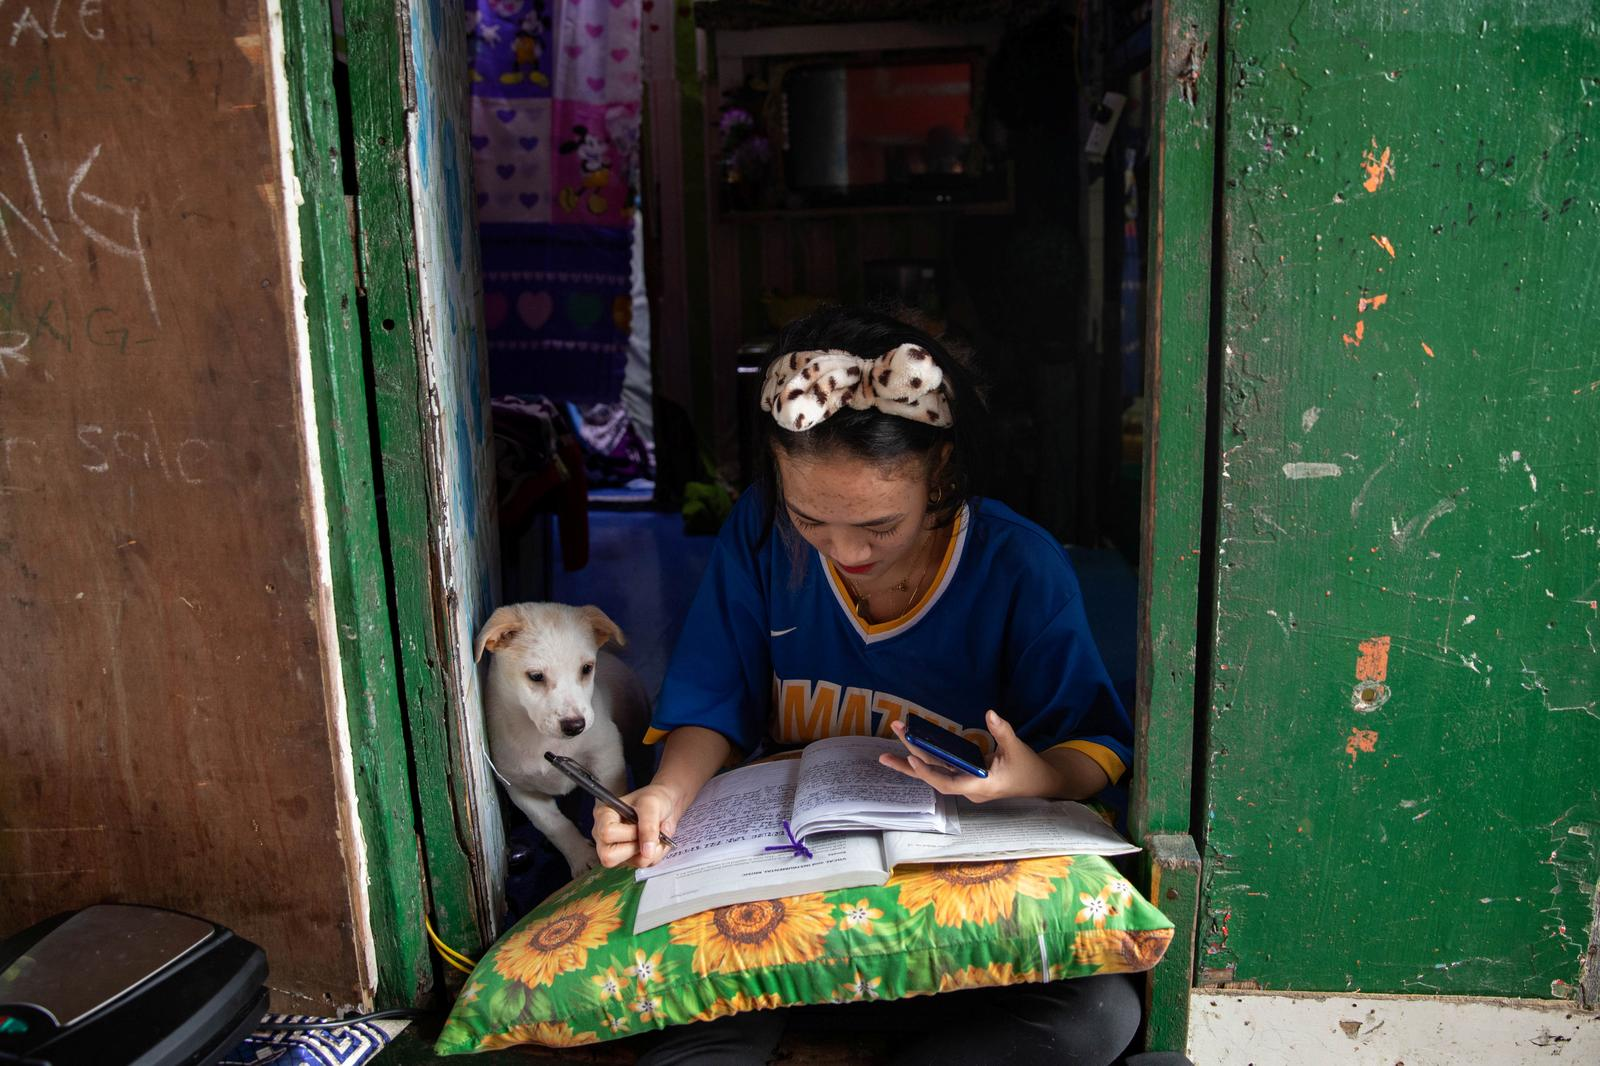 Annie Sabino, 16, a grade 9 student, completes her school work next to her dog, while tending to her family's sidewalk eatery beside their home, as schools remain closed during the coronavirus disease (COVID-19) outbreak, in Manila, Philippines, January 6, 2021. 'I often wake up late for class from staying up too late finishing online schoolwork, as the signal is better at night,' said Sabino. Photo: Reuters